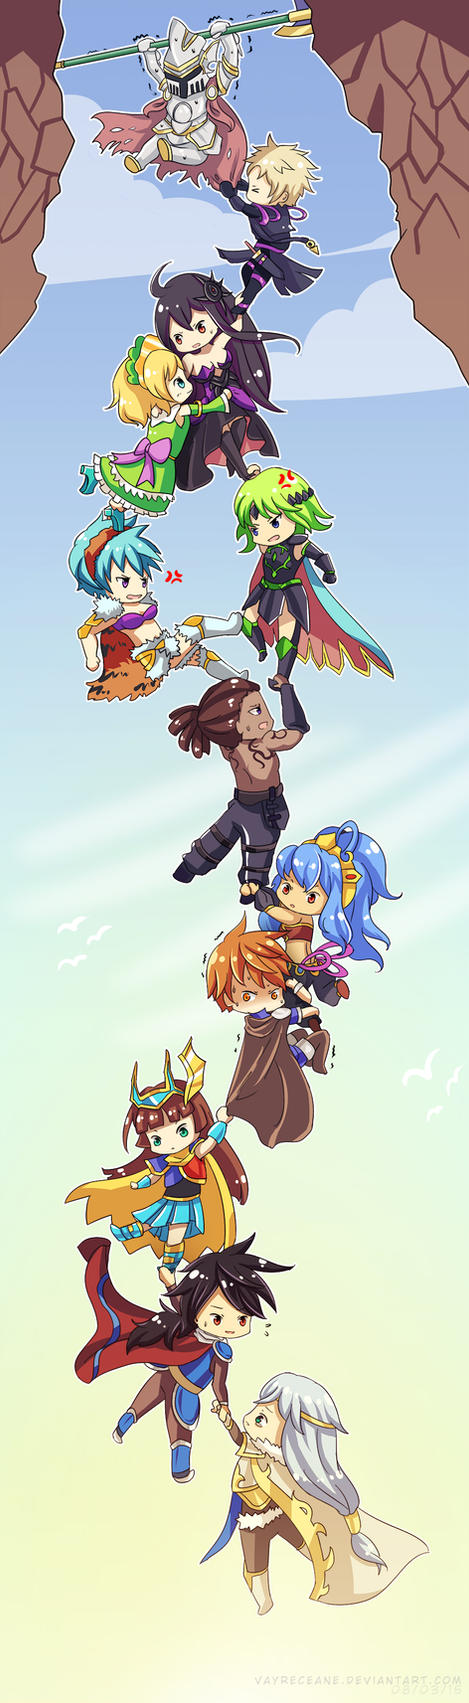 Brave Frontier - Hold On! by Vayreceane